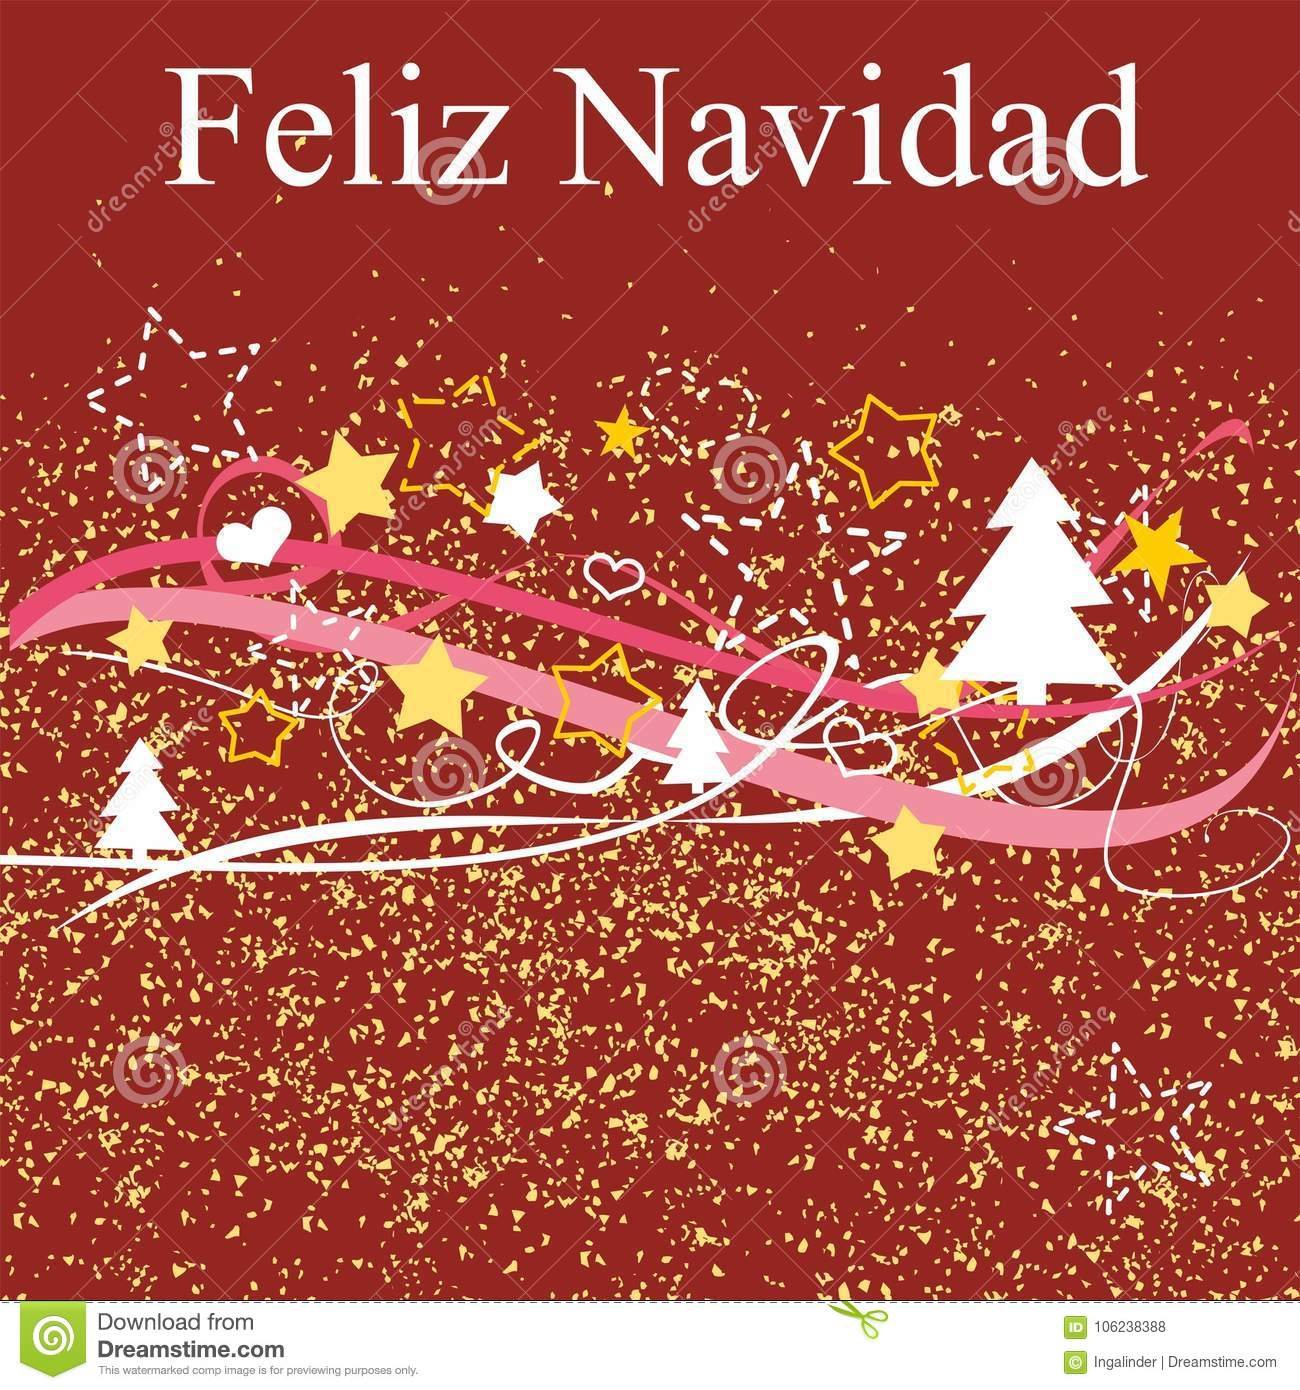 Christmas Wishes In Spanish.Christmas Vector Card Or Invitation With Merry Christmas